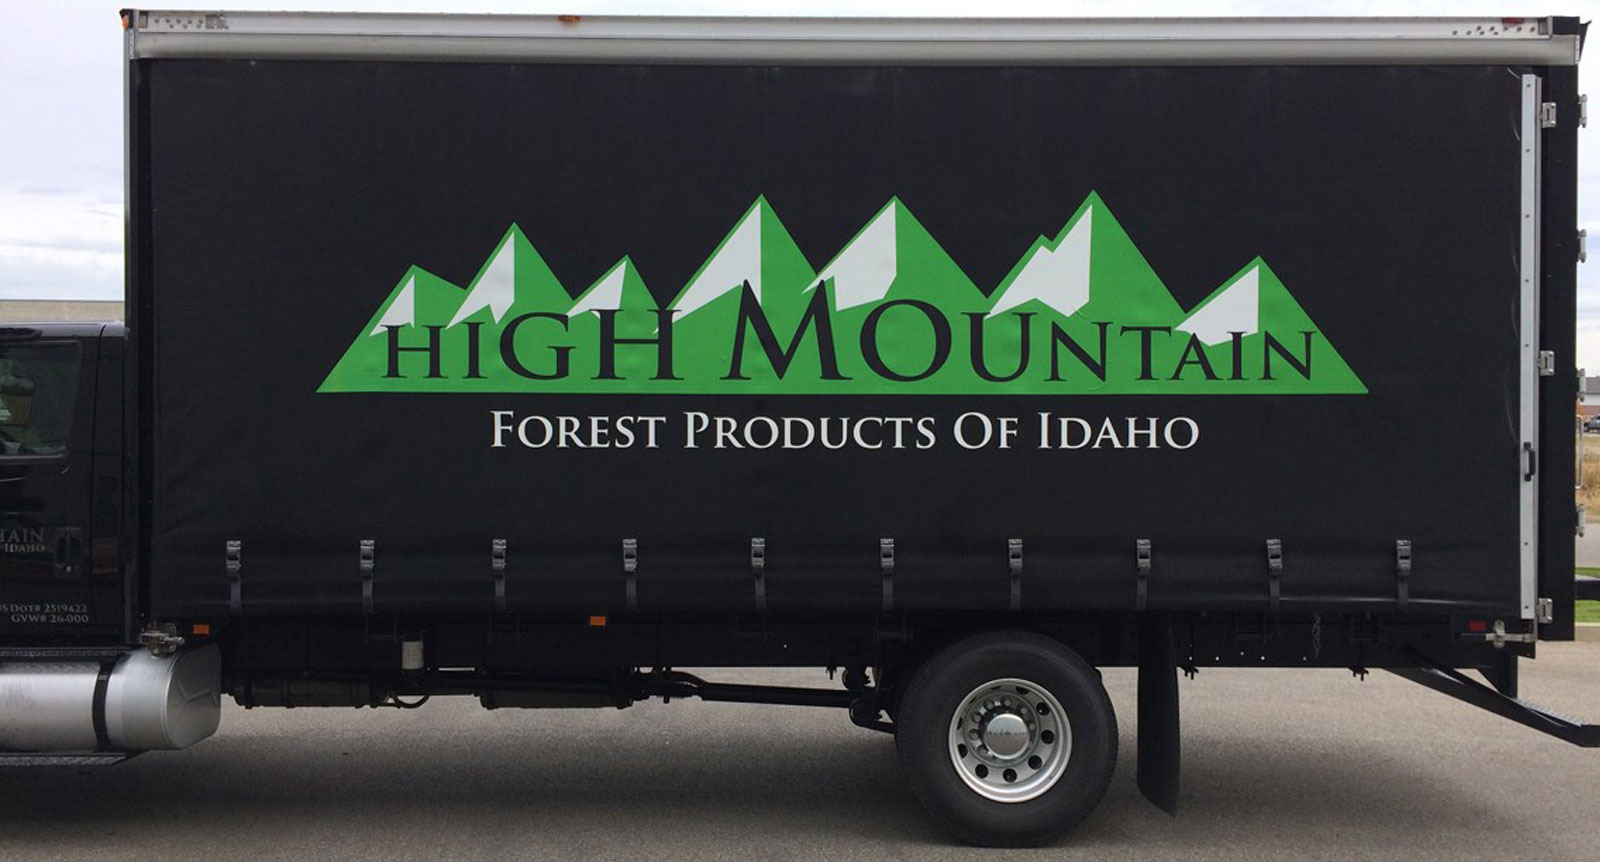 UCS Forest Group Acquires High Mountain Forest Products of Idaho LLC